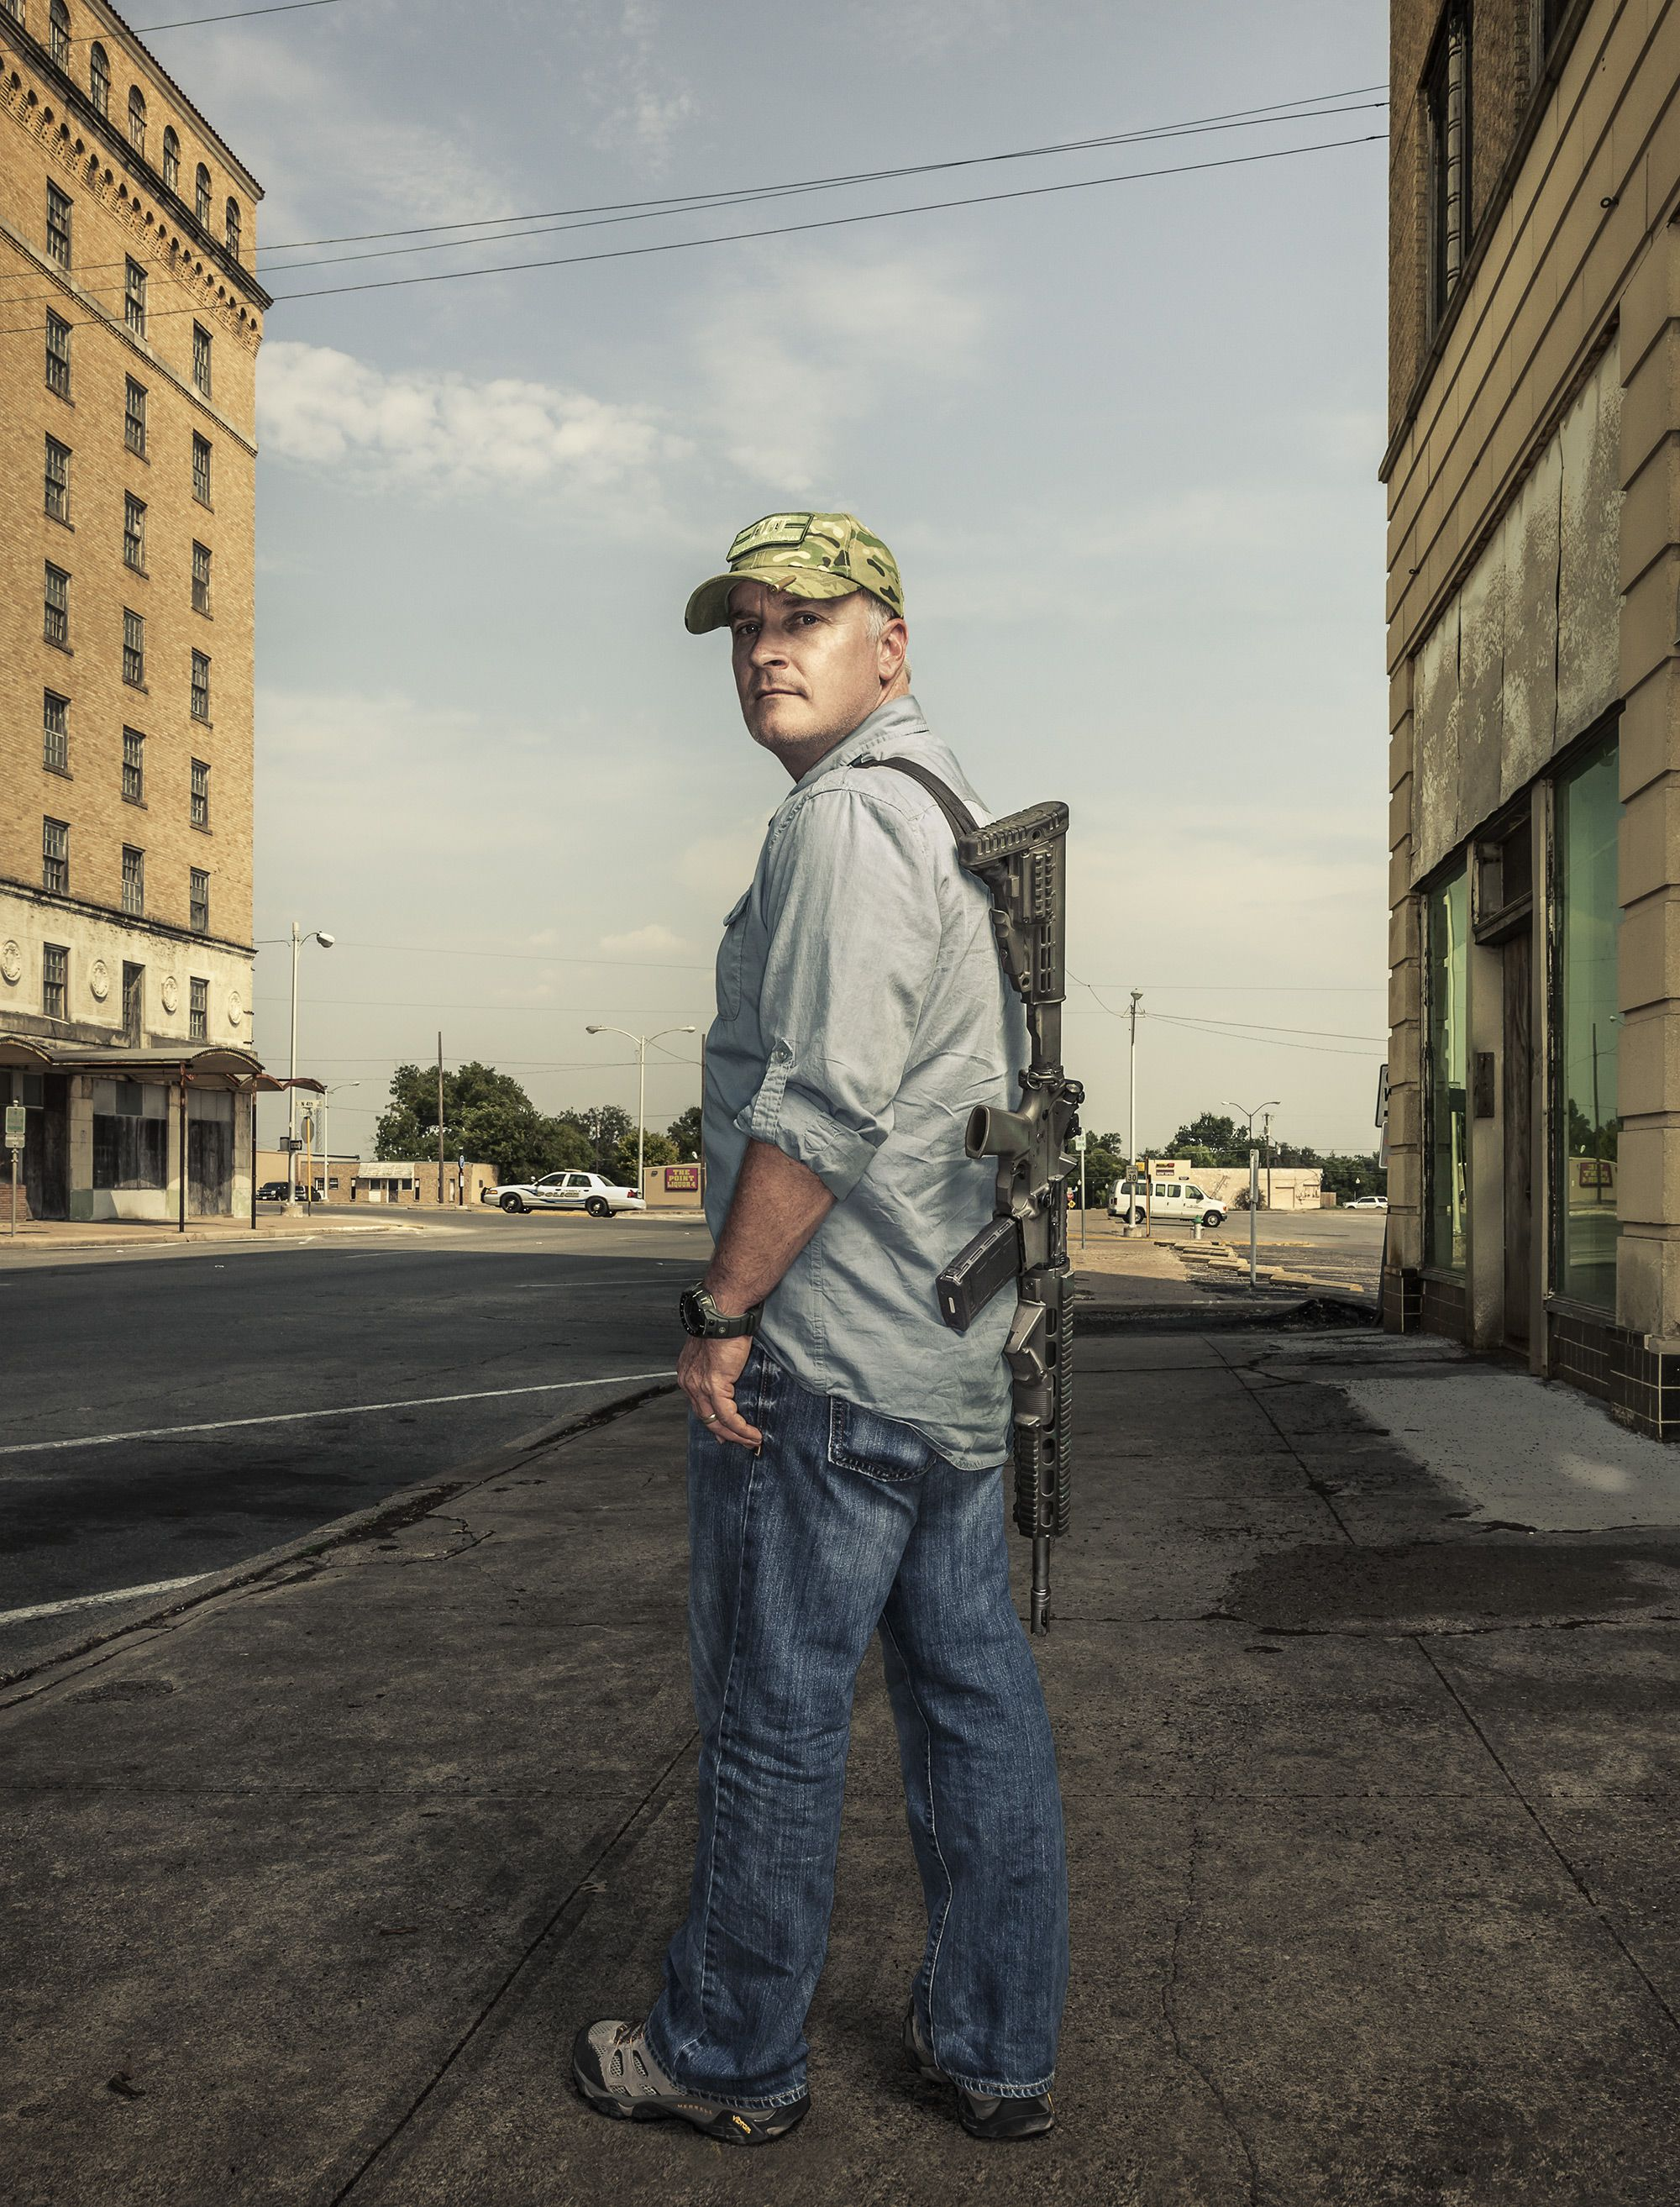 Open Carry Laws - C J  Grisham and the Right to Bear Arms in